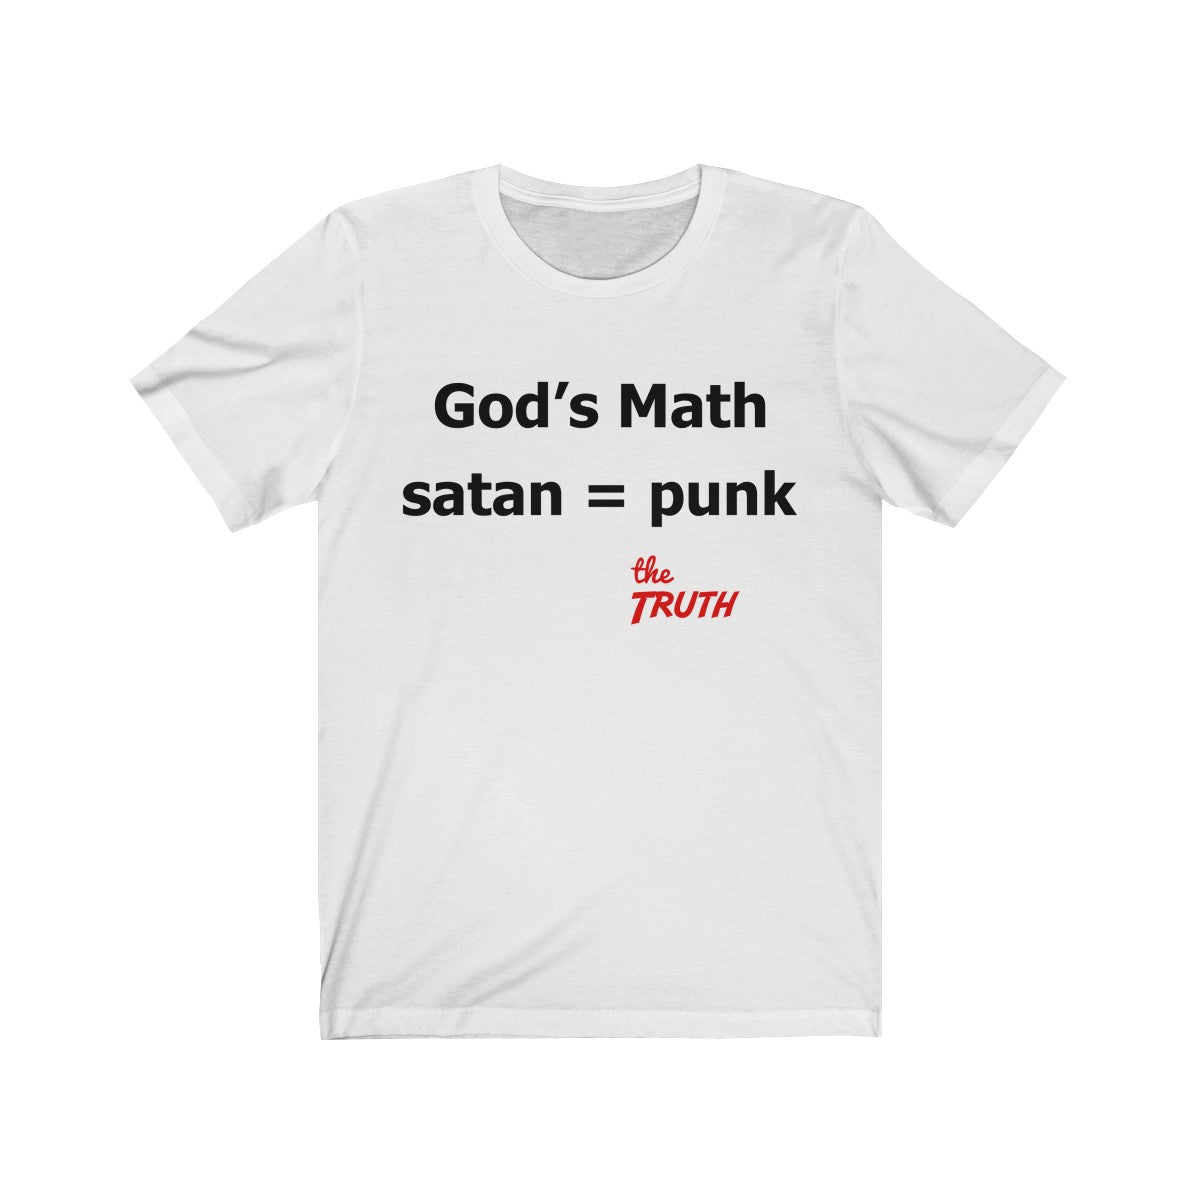 God's Math is simple and to the point on this Christian T-Shirt, satan equals a punk